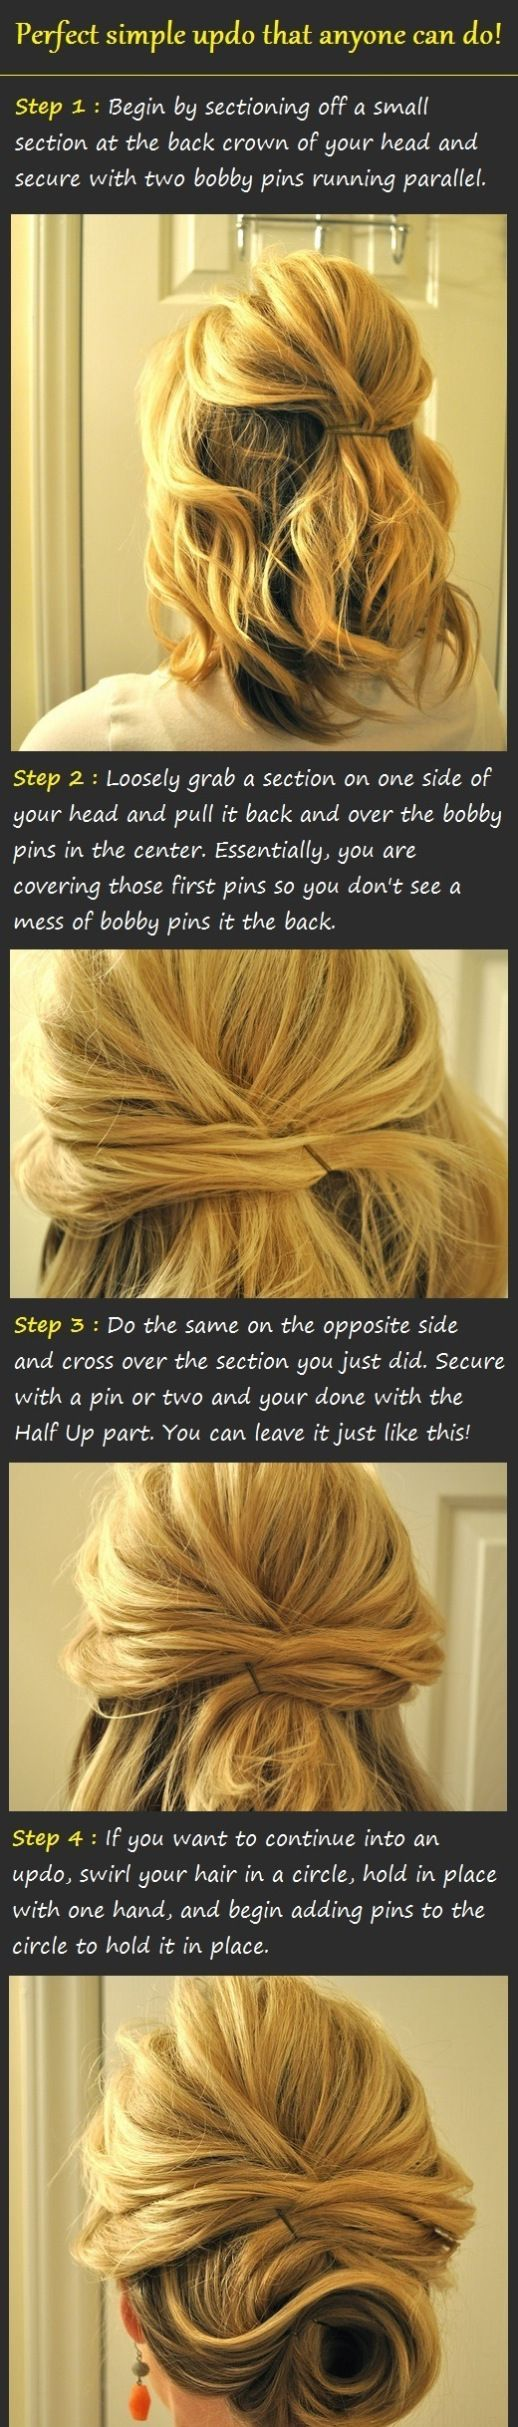 If you'd only look at the final photo of this hairstyle, it's easy to think that only a professional hairstylist can do it. It looks complicated and puzzling. But look at the step-by-step procedure, and you'll see even a novice like you can do it without